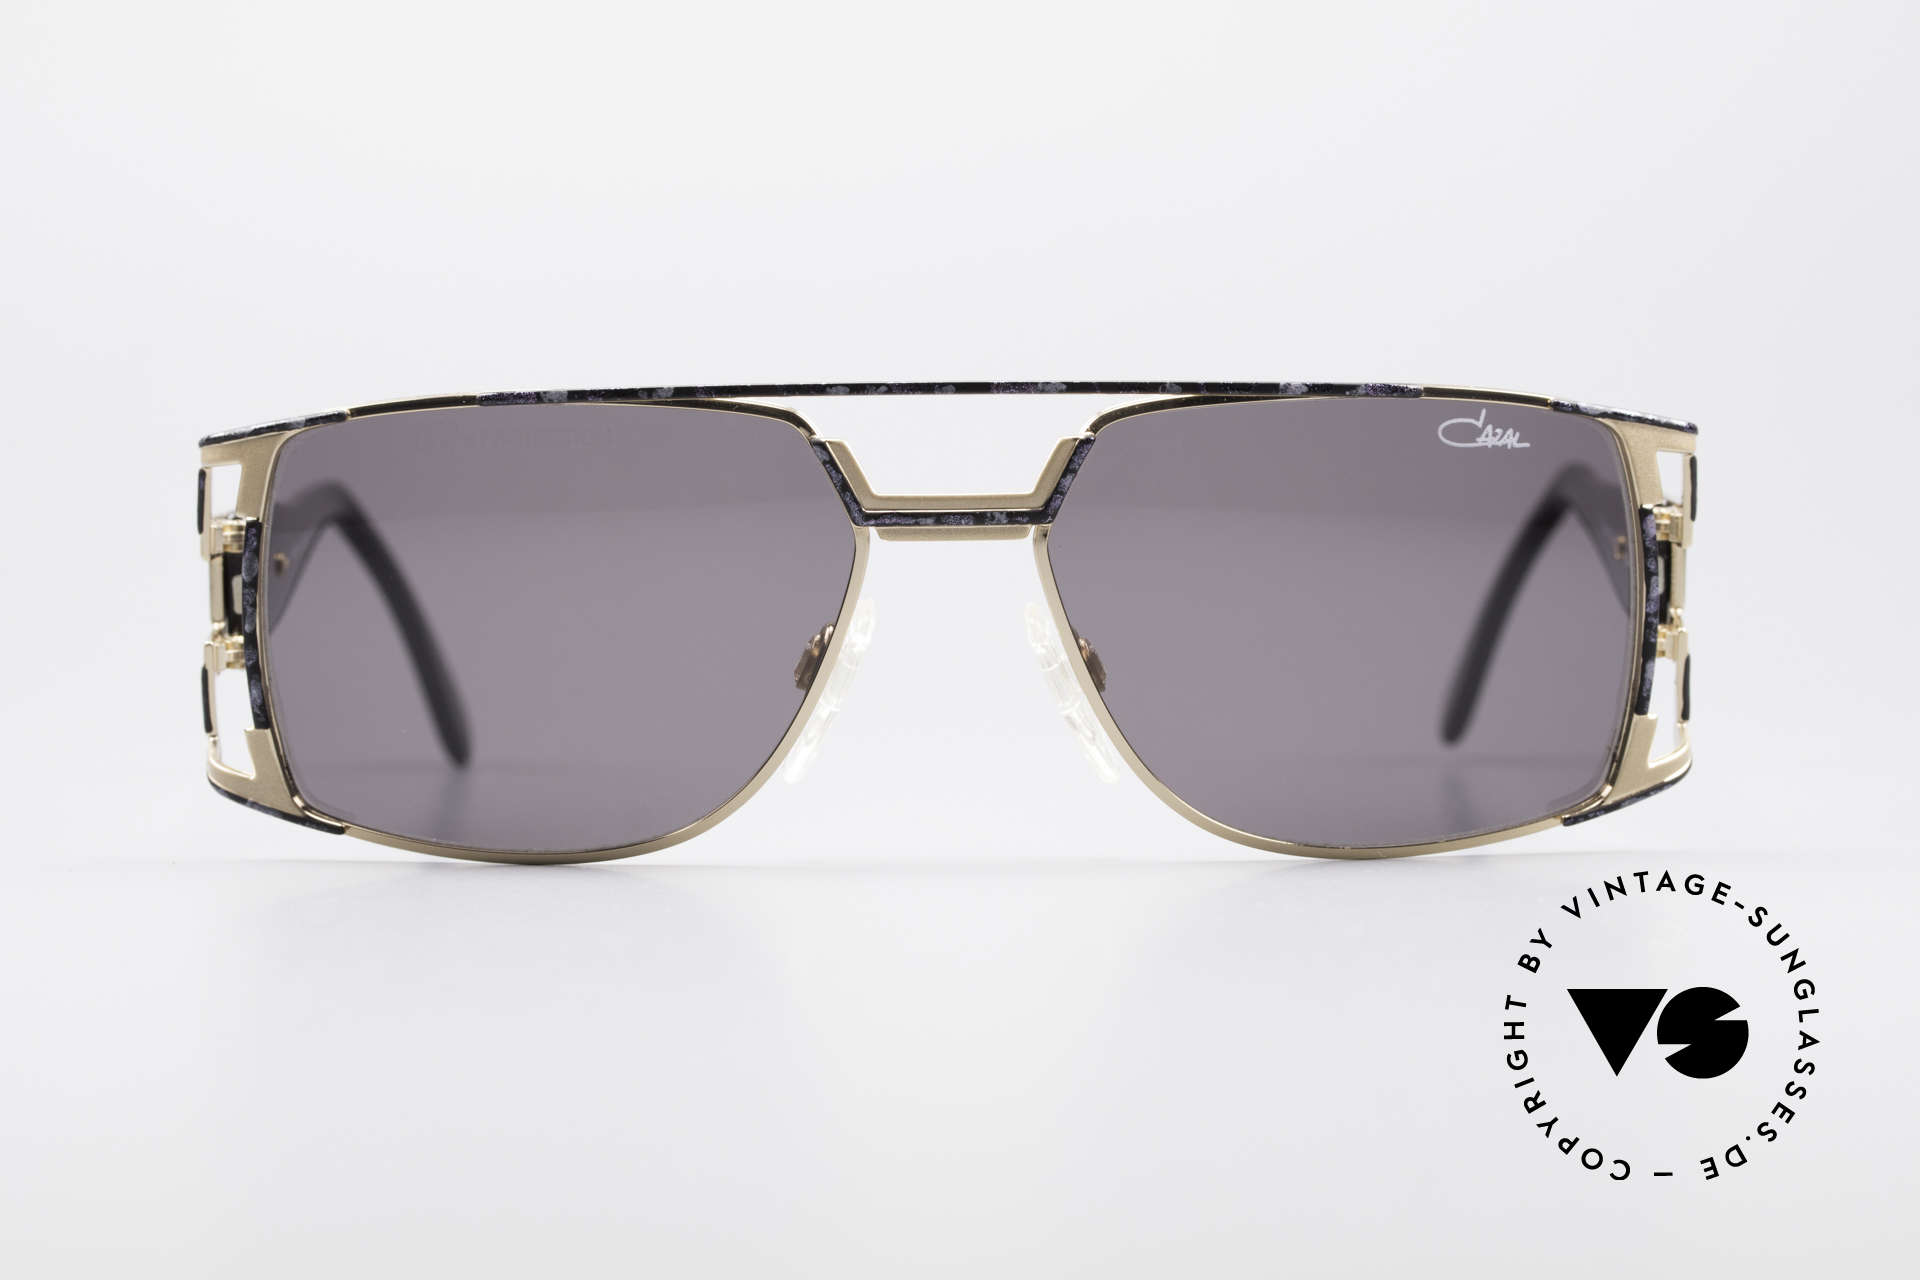 Cazal 974 Unisex Shades Ladies Men, great combination of design elements and materials, Made for Men and Women